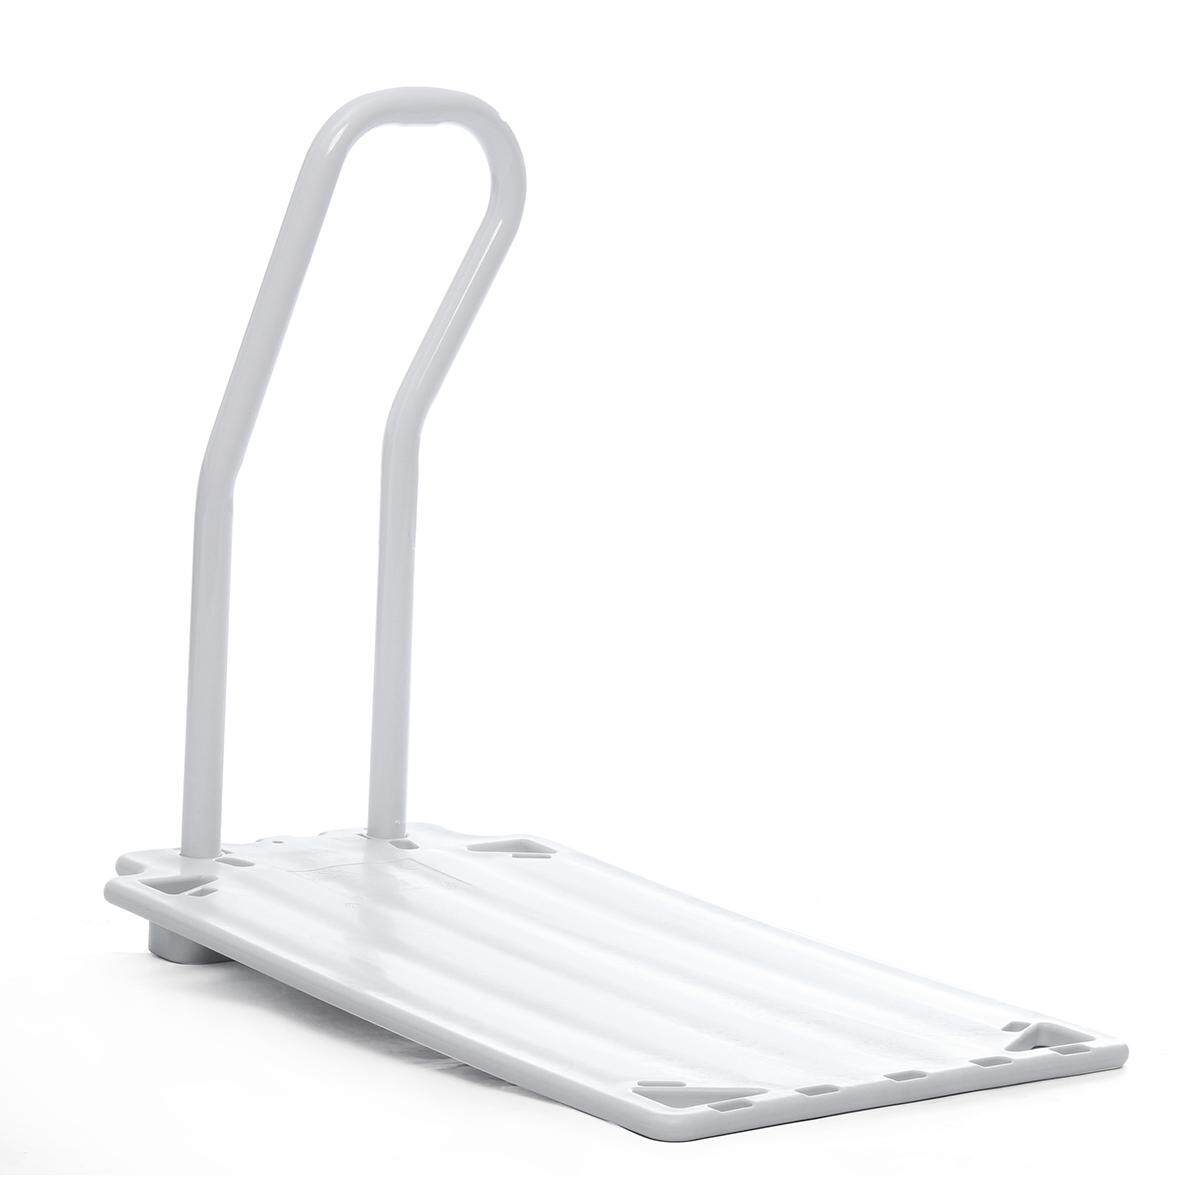 Cheapest Grip Bed Rail Mobility Disability Aid Support Bar Handle Elderly Rails 300 Lbs Intl